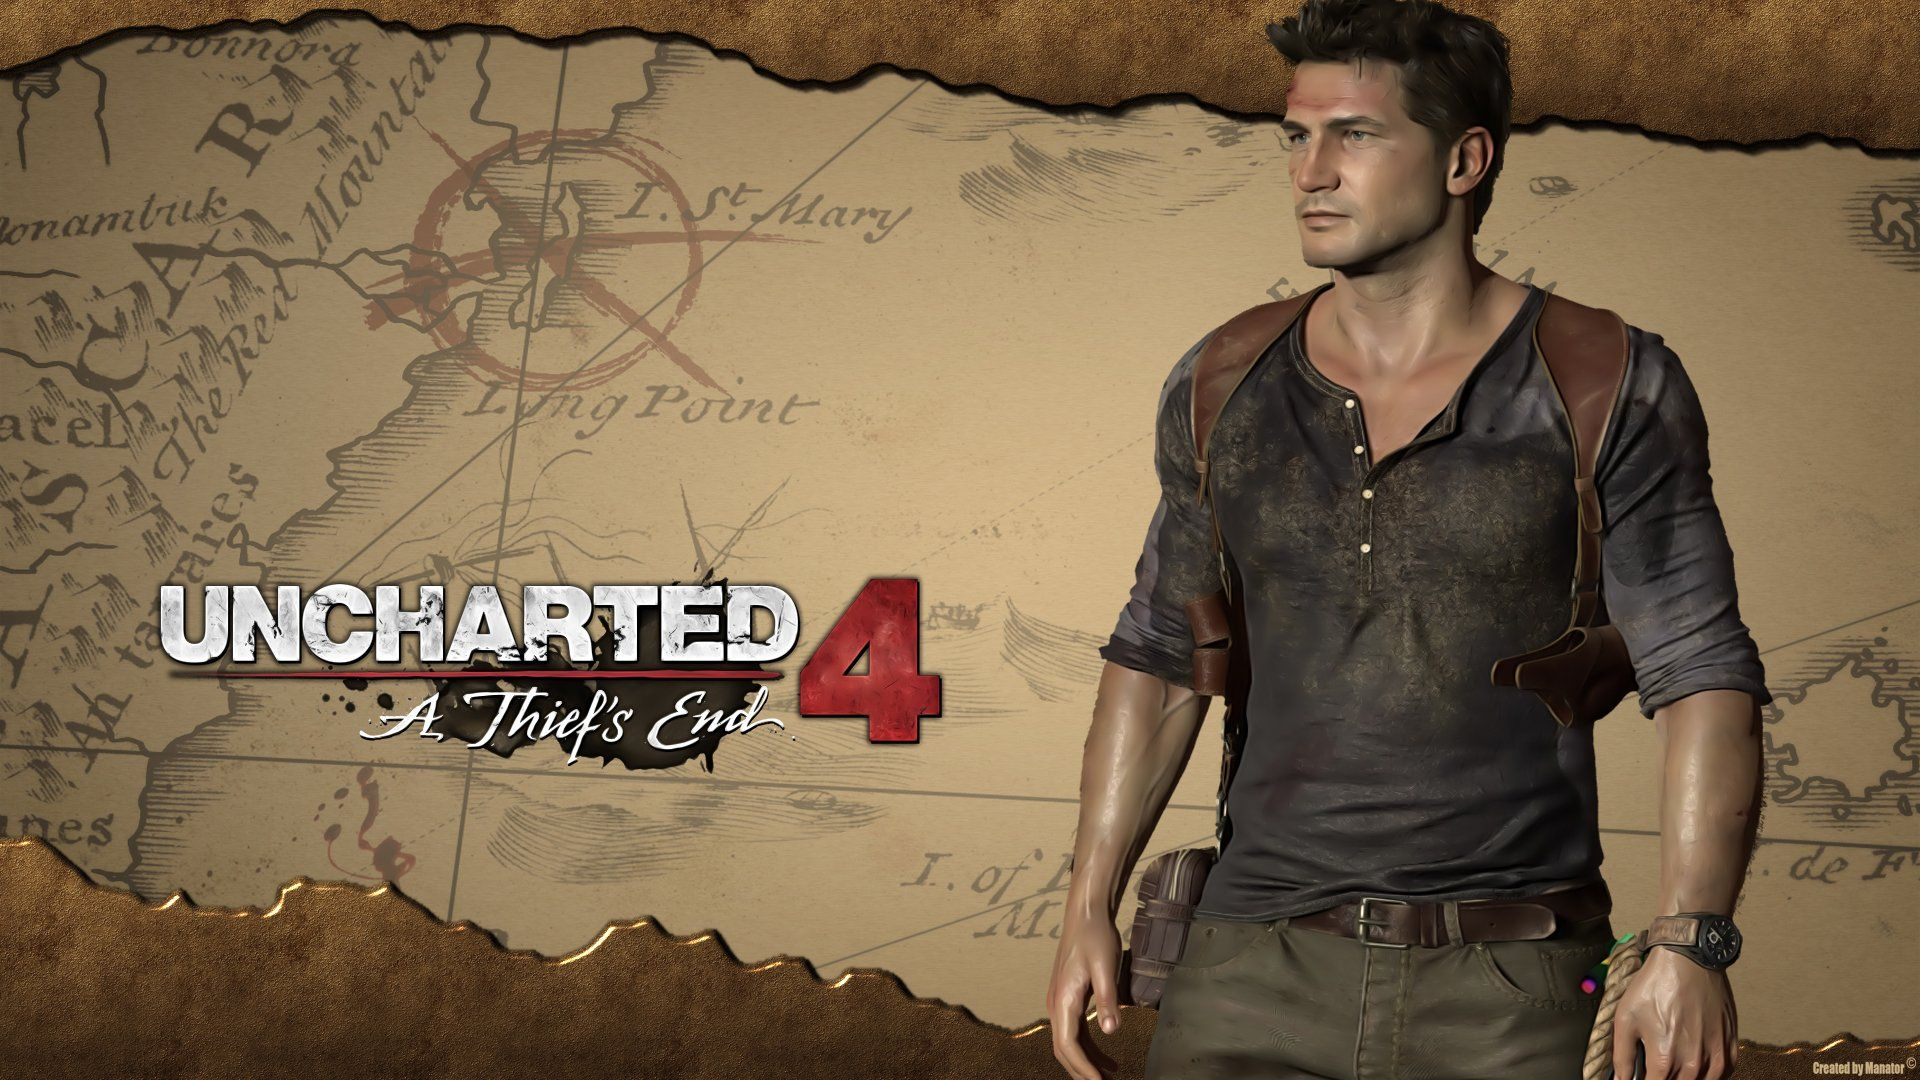 Uncharted : A Thiefs End Limited Edition PS Bundle Announced 1024×1448 Uncharted 4 A Thief's End ...